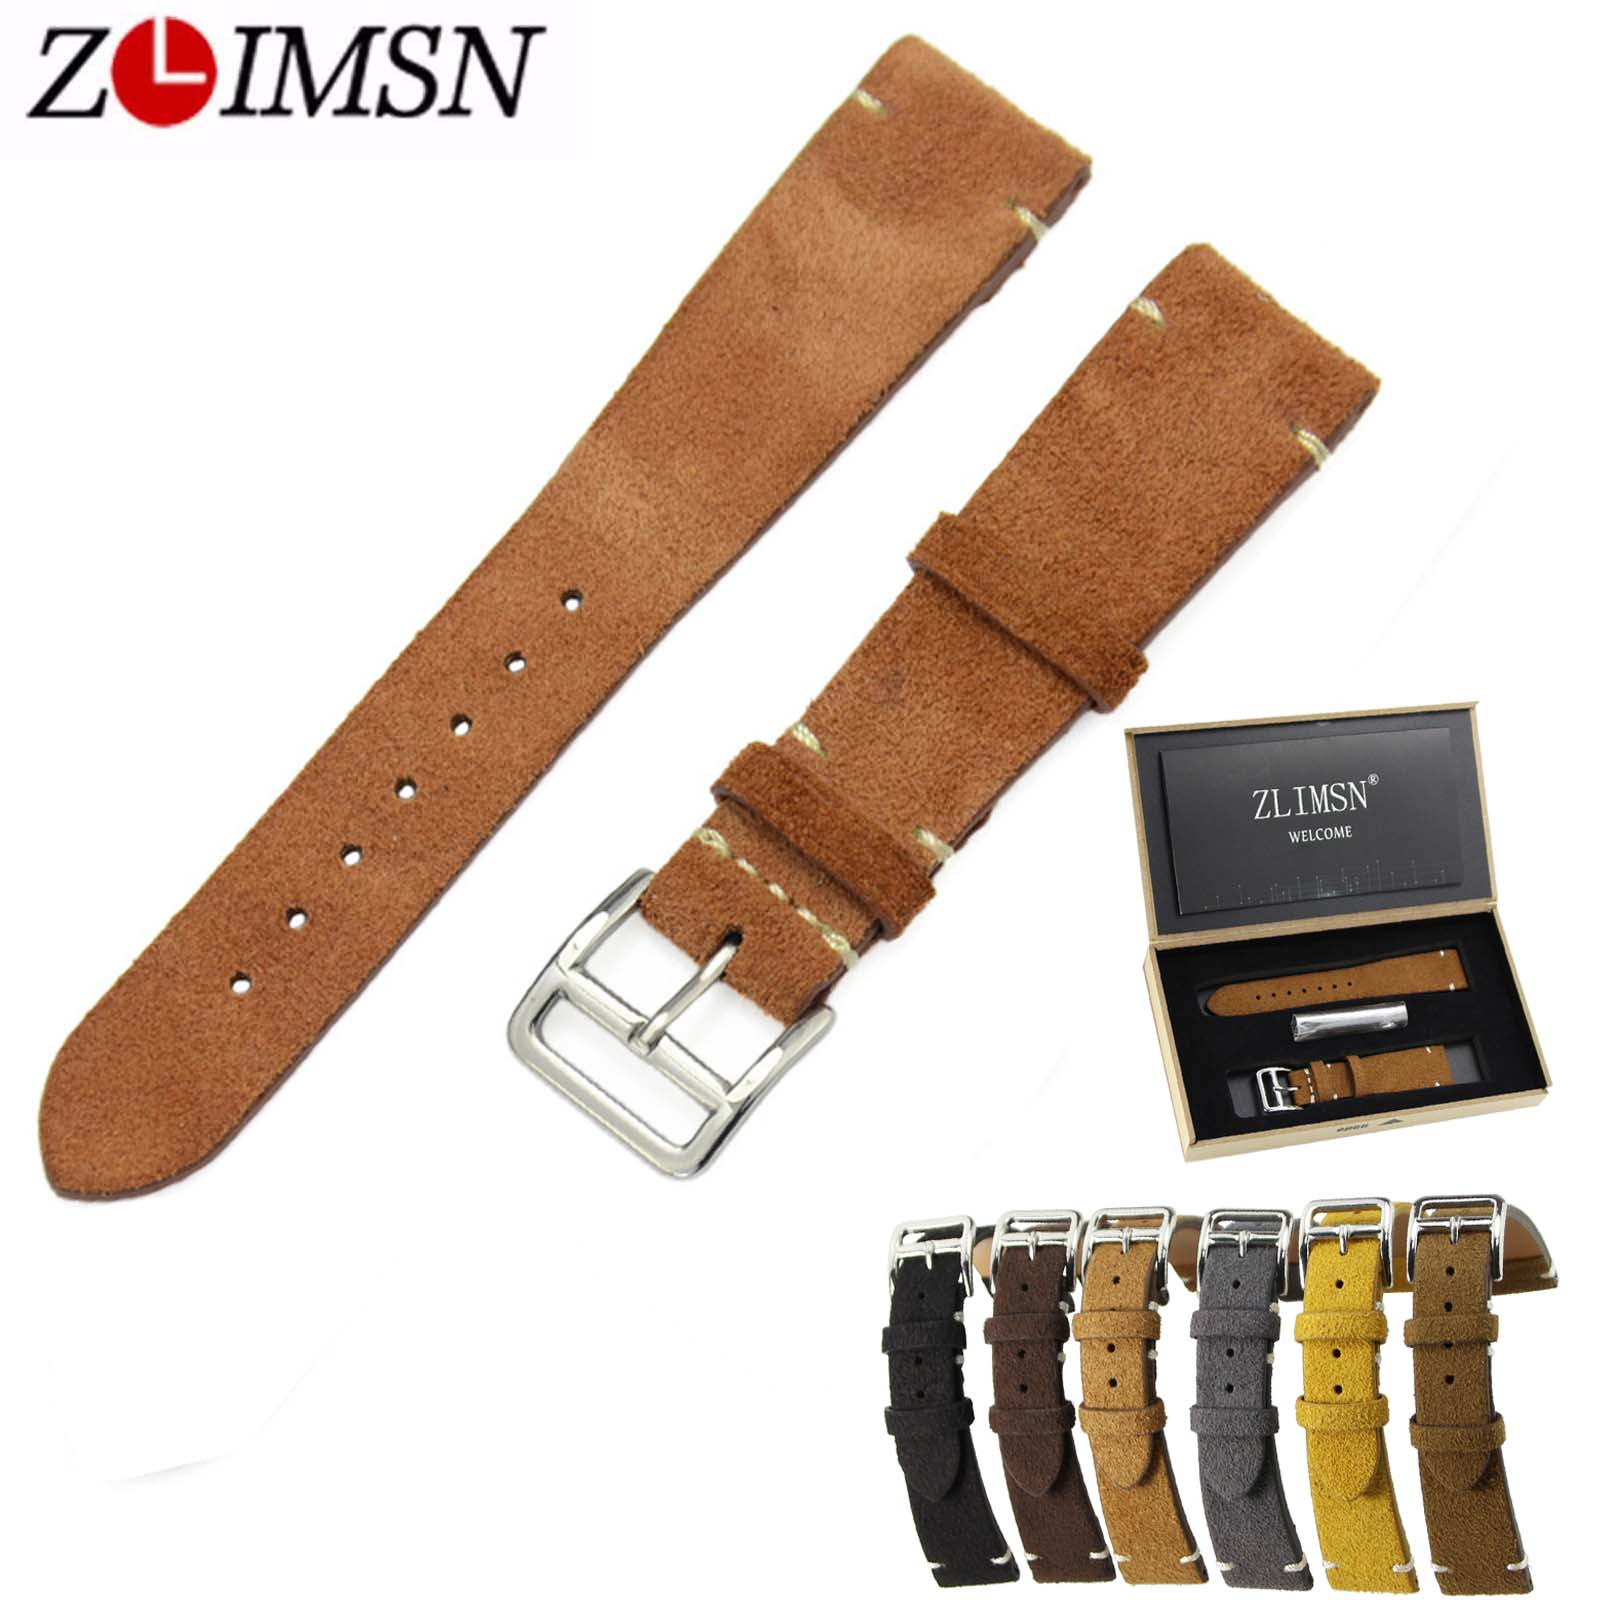 ZLIMSN Watches Genuine Leather Watch Straps Mens Female Belt Replacement 20mm Black Brown Watchbands Stainless Steel Pin Buckle цена и фото